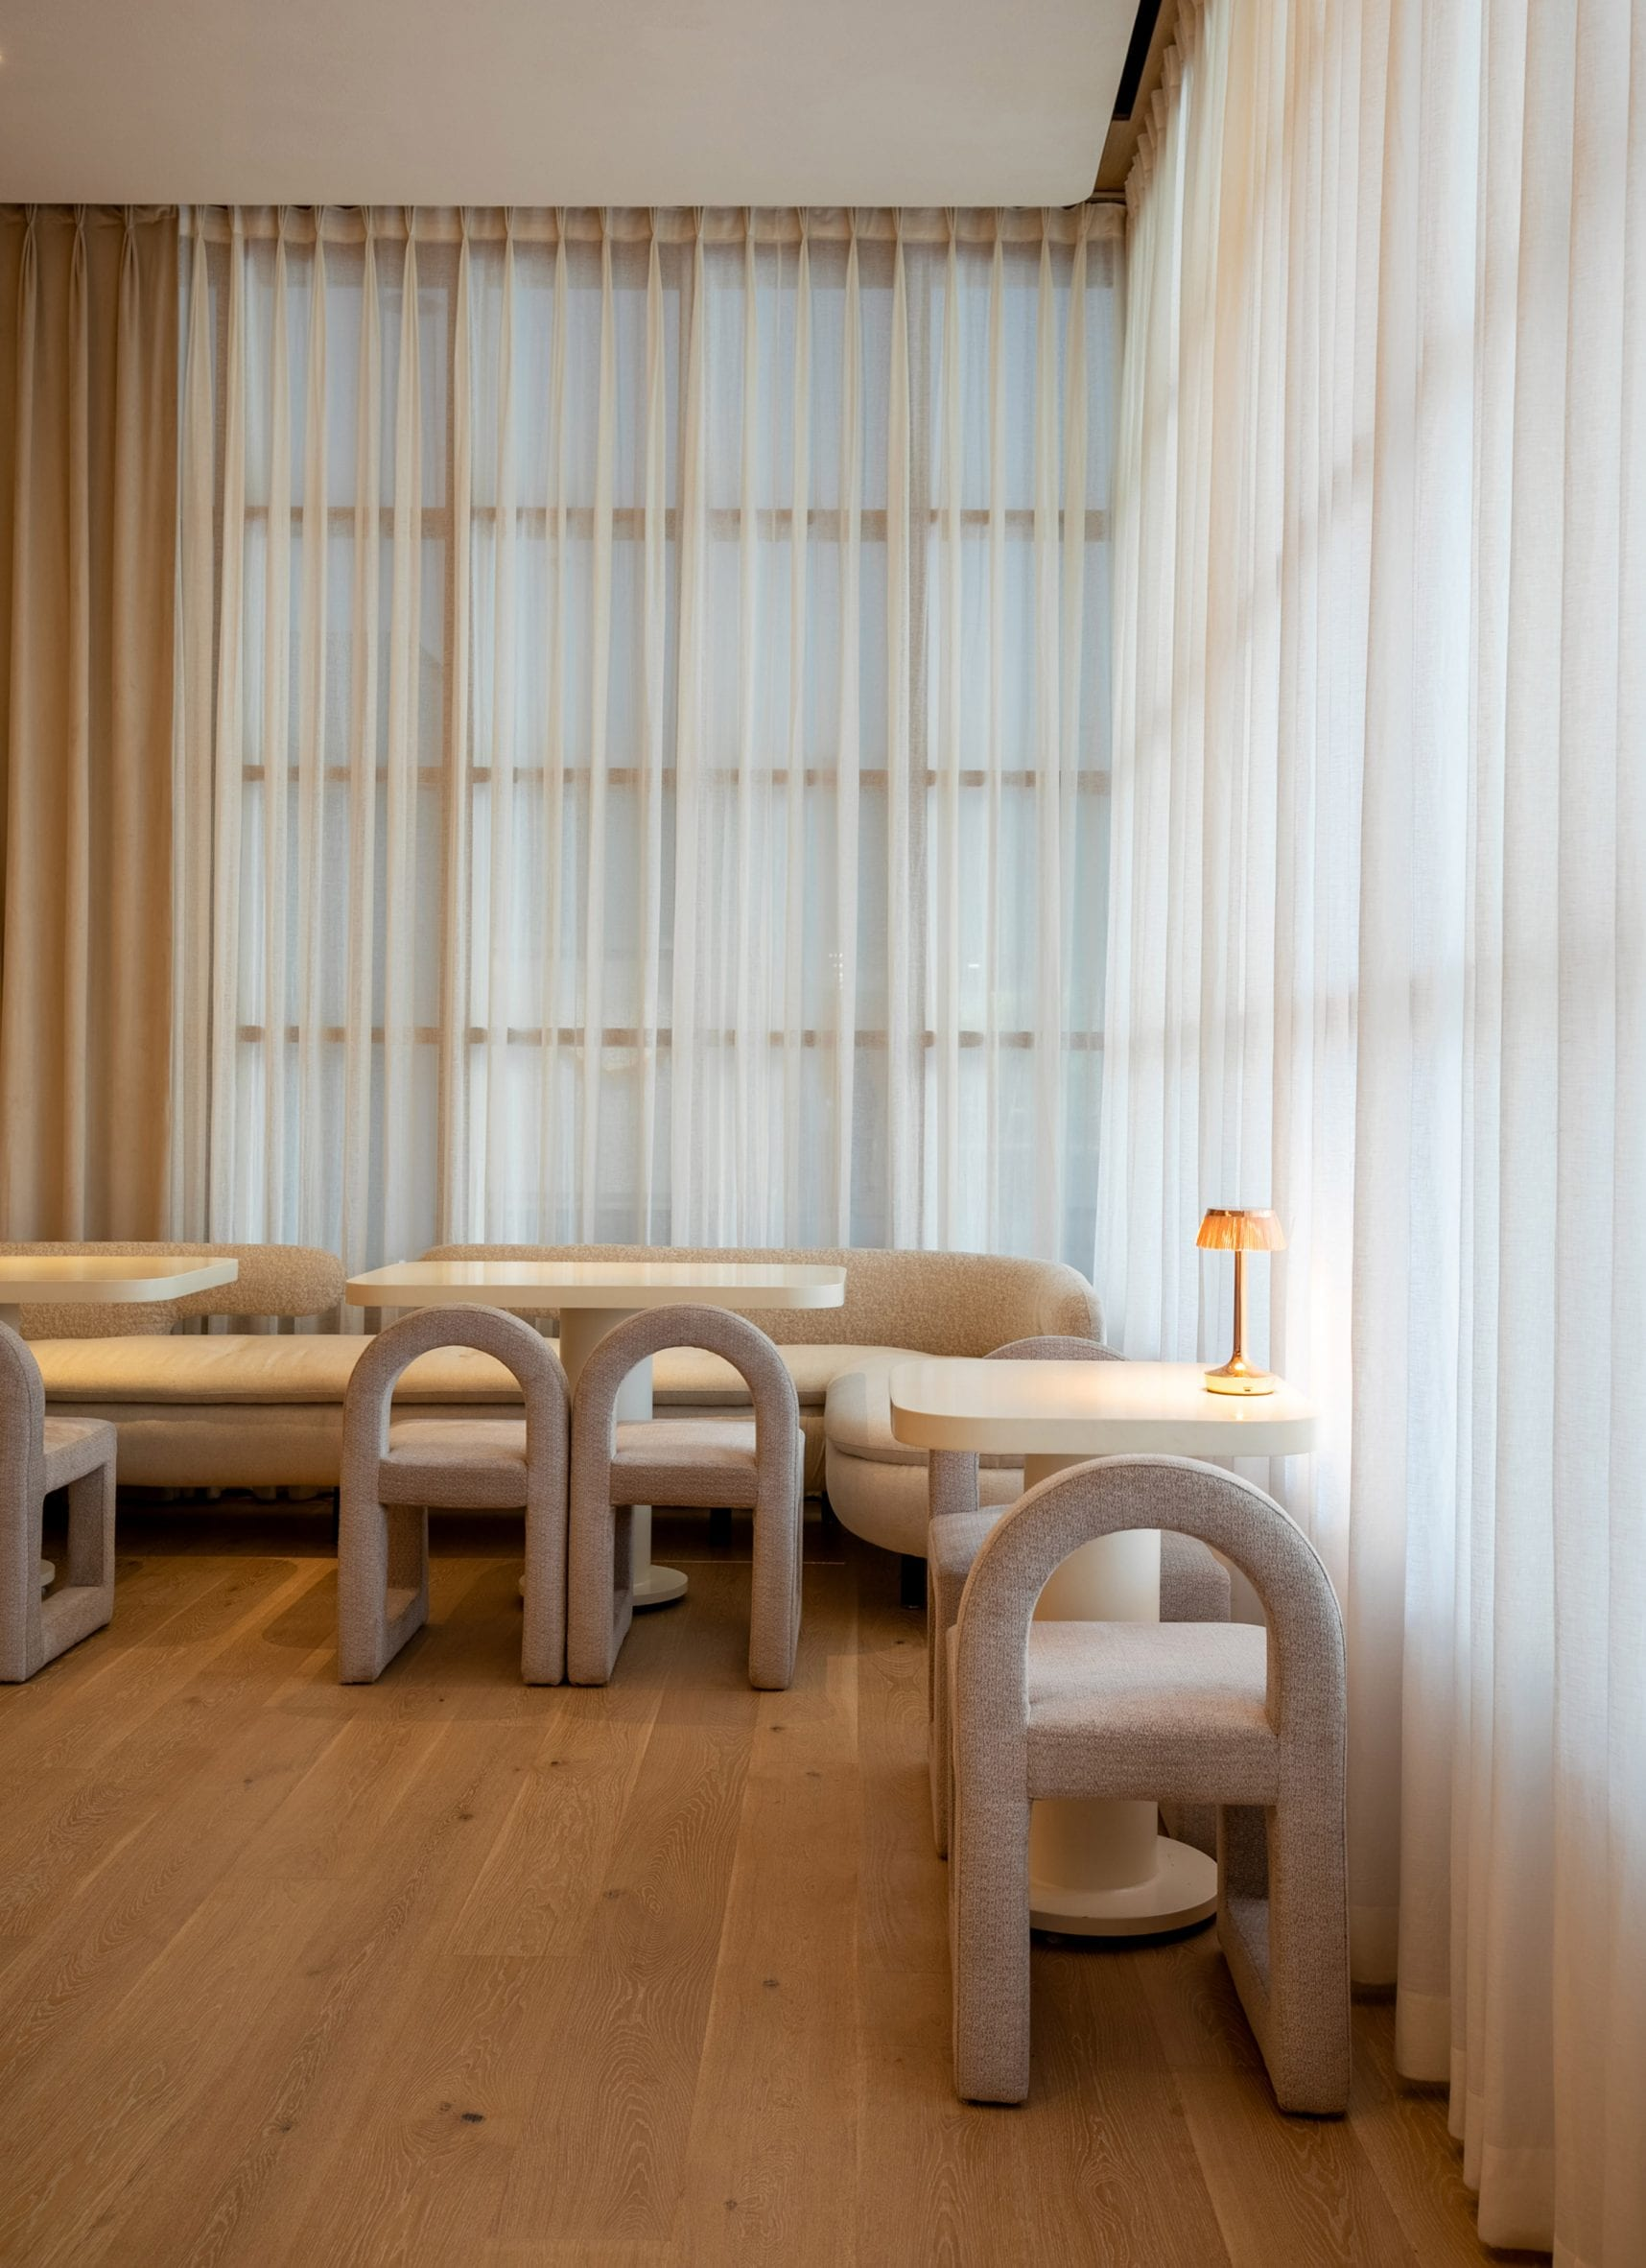 Seating area with sheer curtains and rounded seating in restaurant by Ashiesh Shah